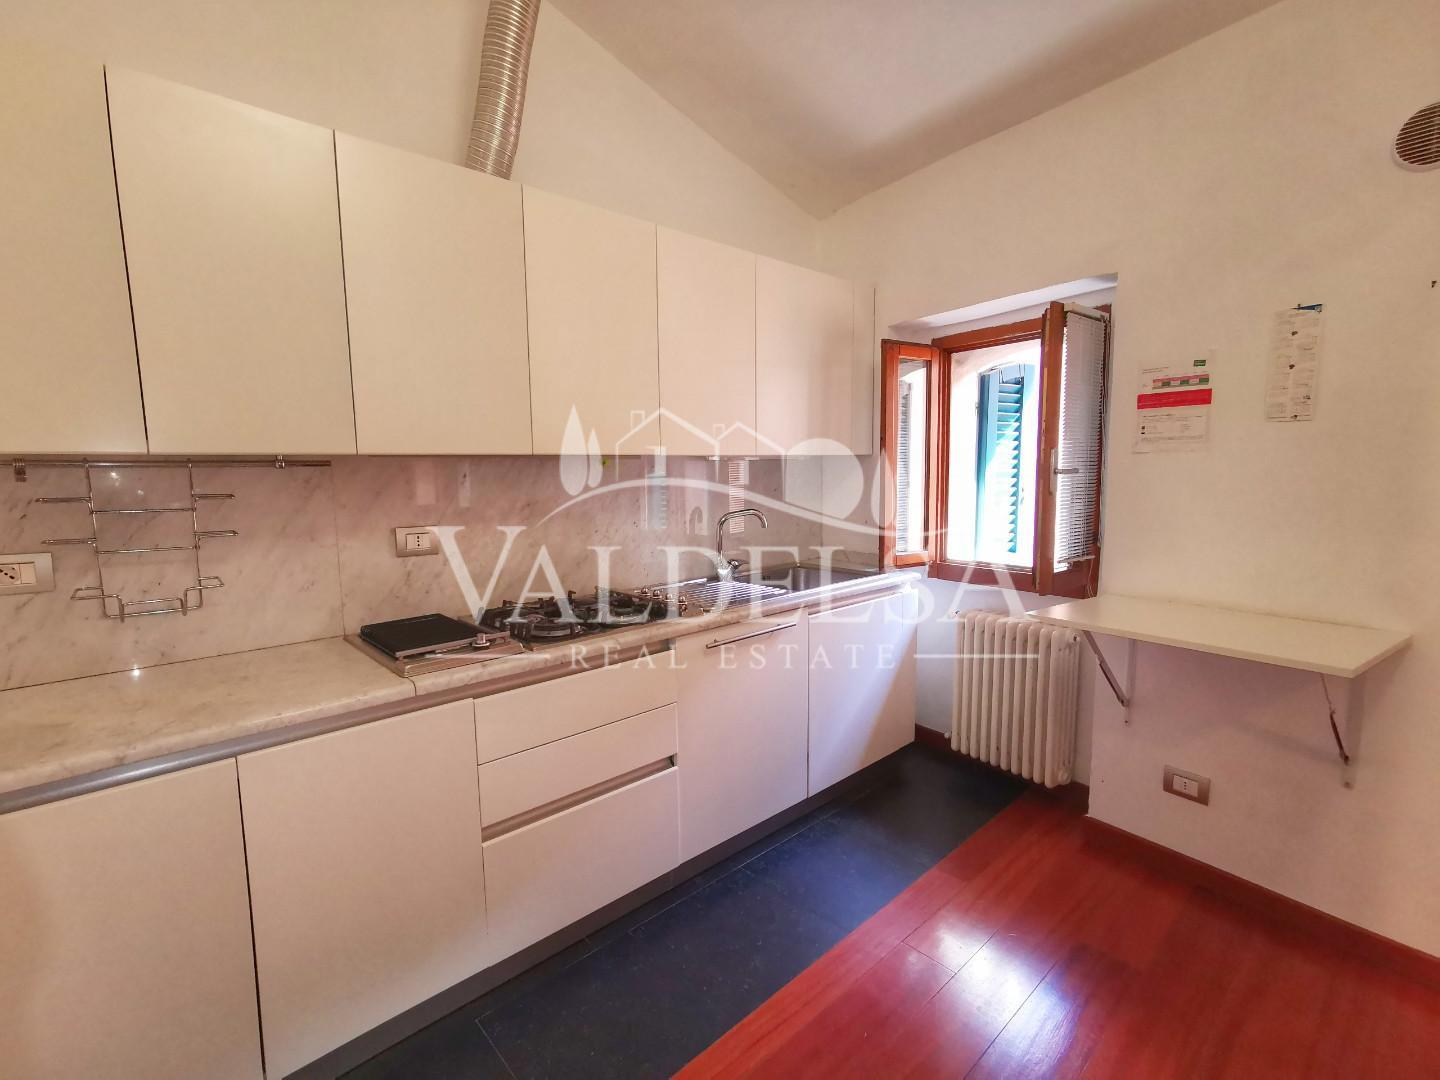 Townhouses for sale, ref. 128